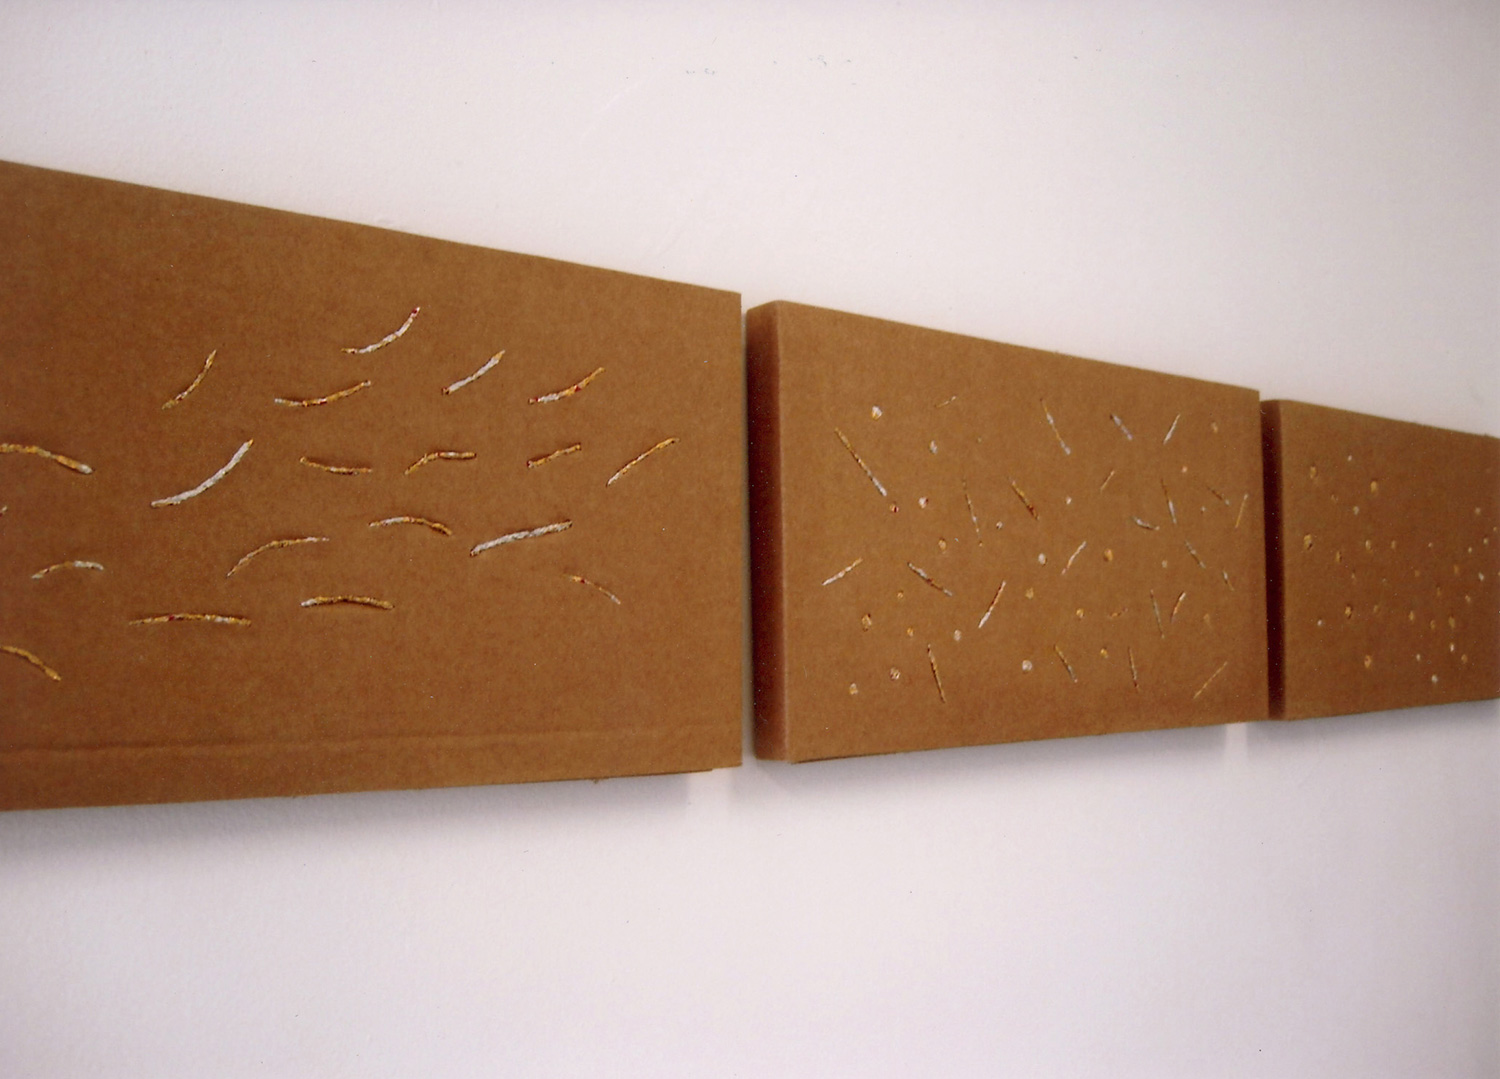 cosmos 2007  ︱  chocolate wrappings, cardboard  ︱  200 x 400mm